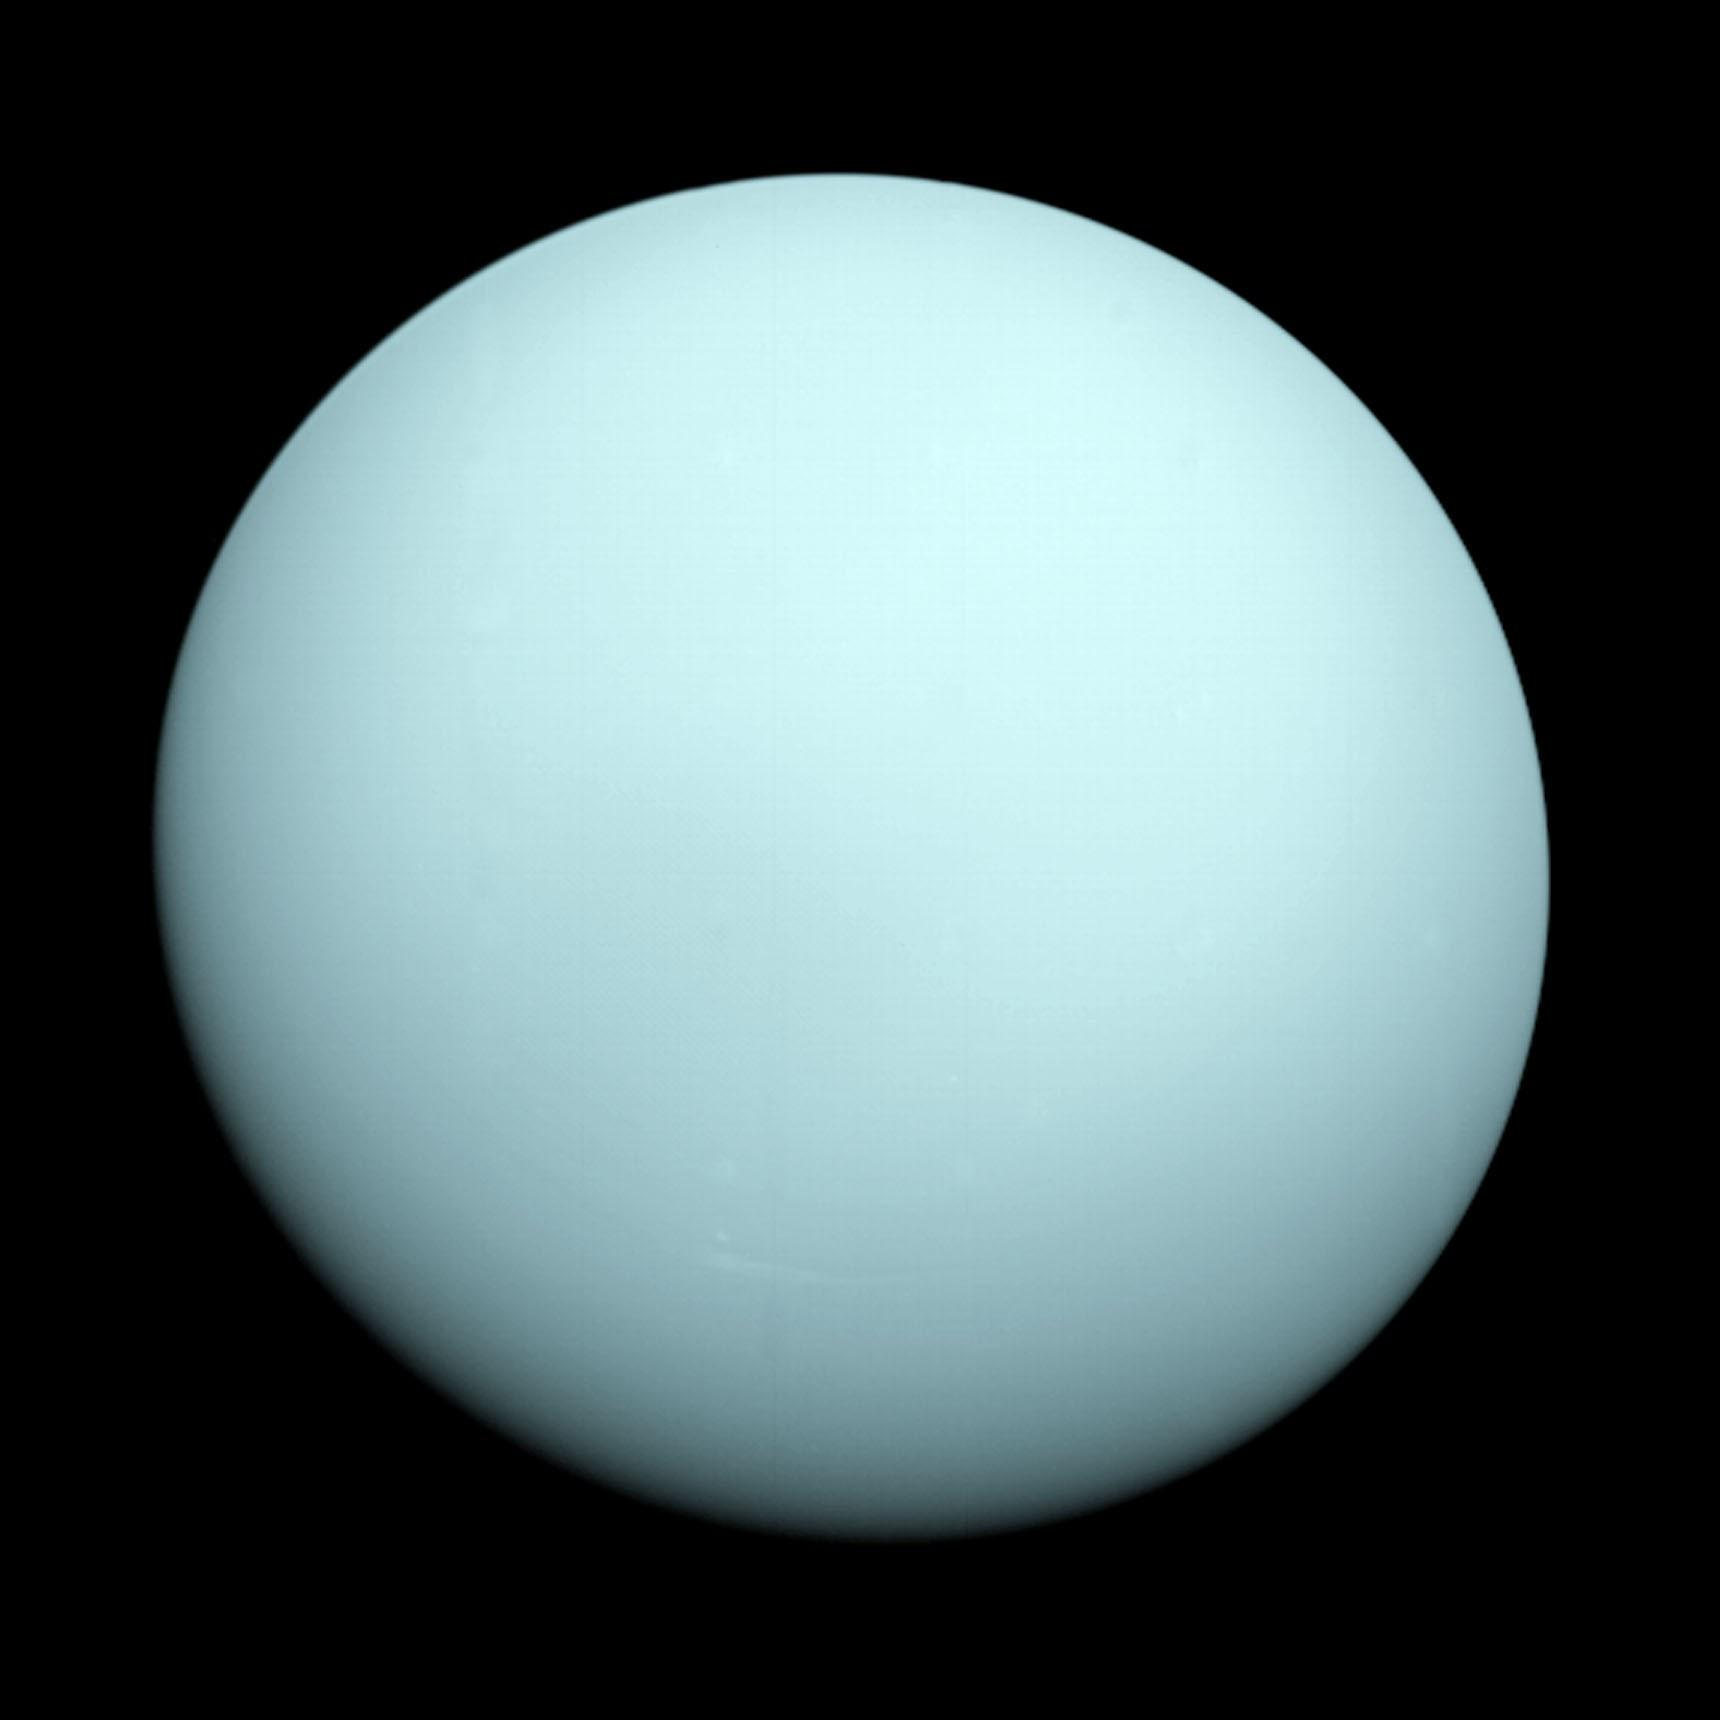 Uranus blasted a gas bubble 22,000 times bigger than Earth